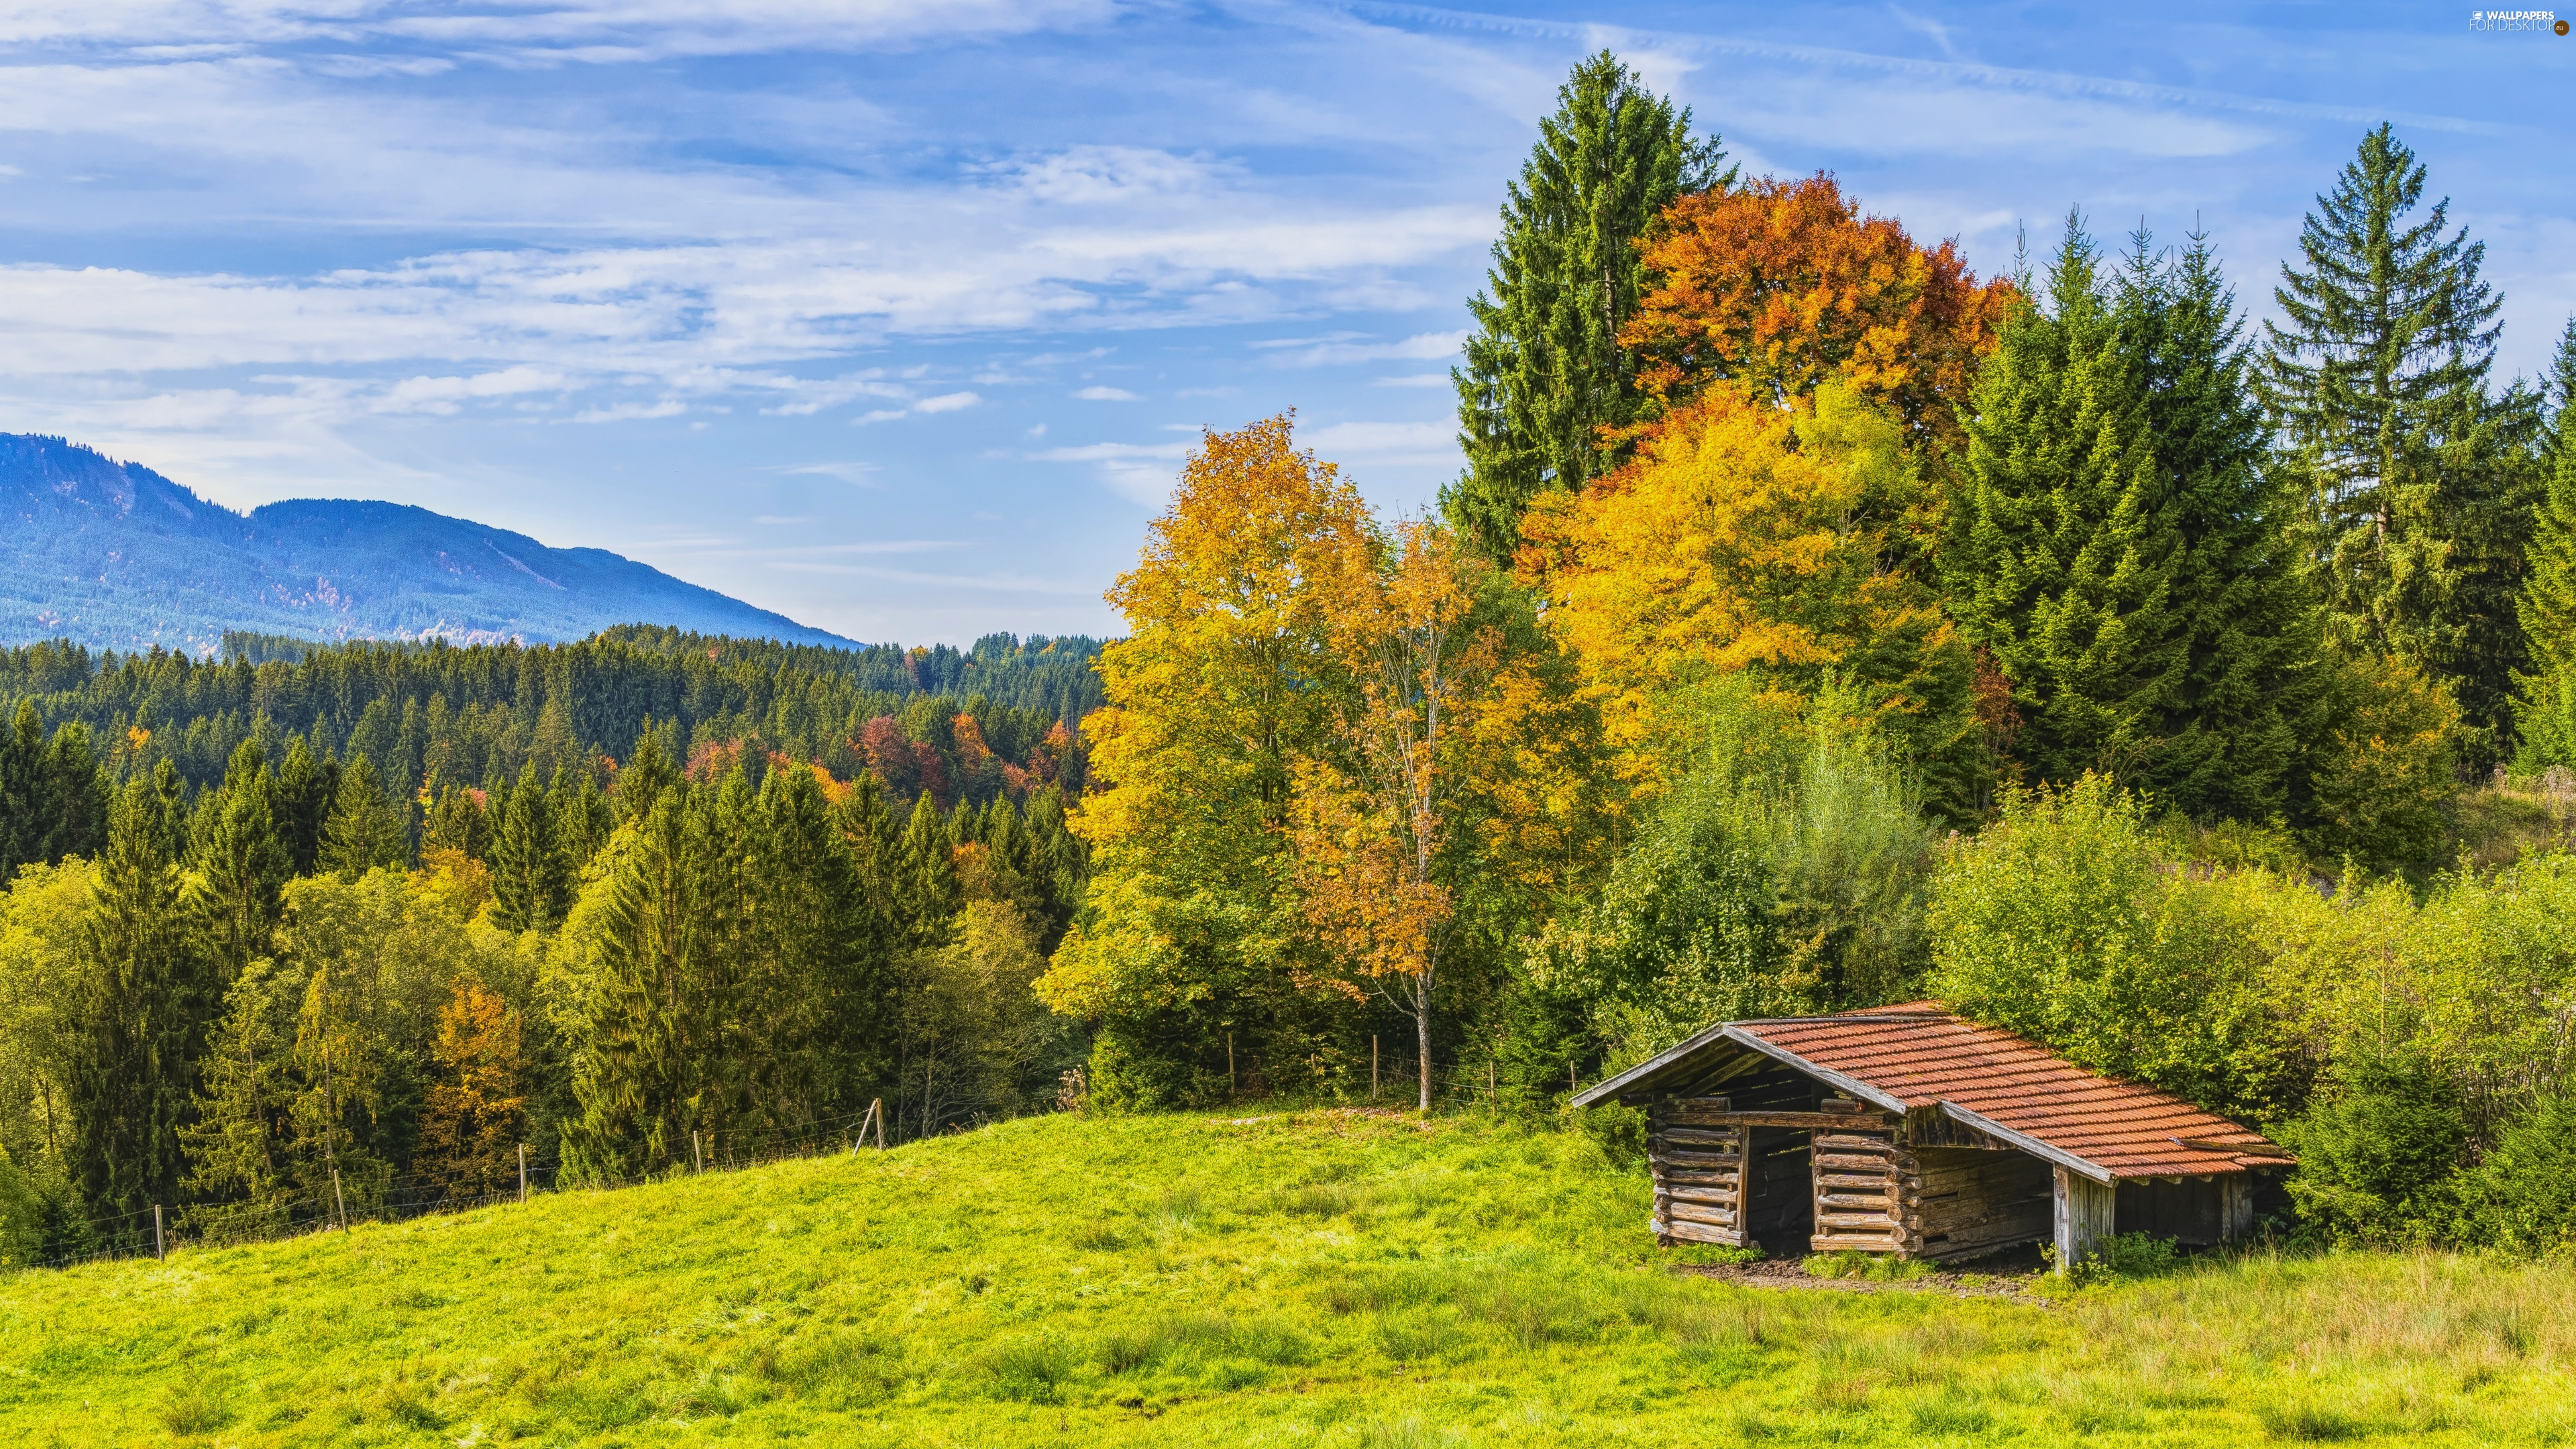 viewes, Mountains, cottage, trees, autumn, Wooden, hut